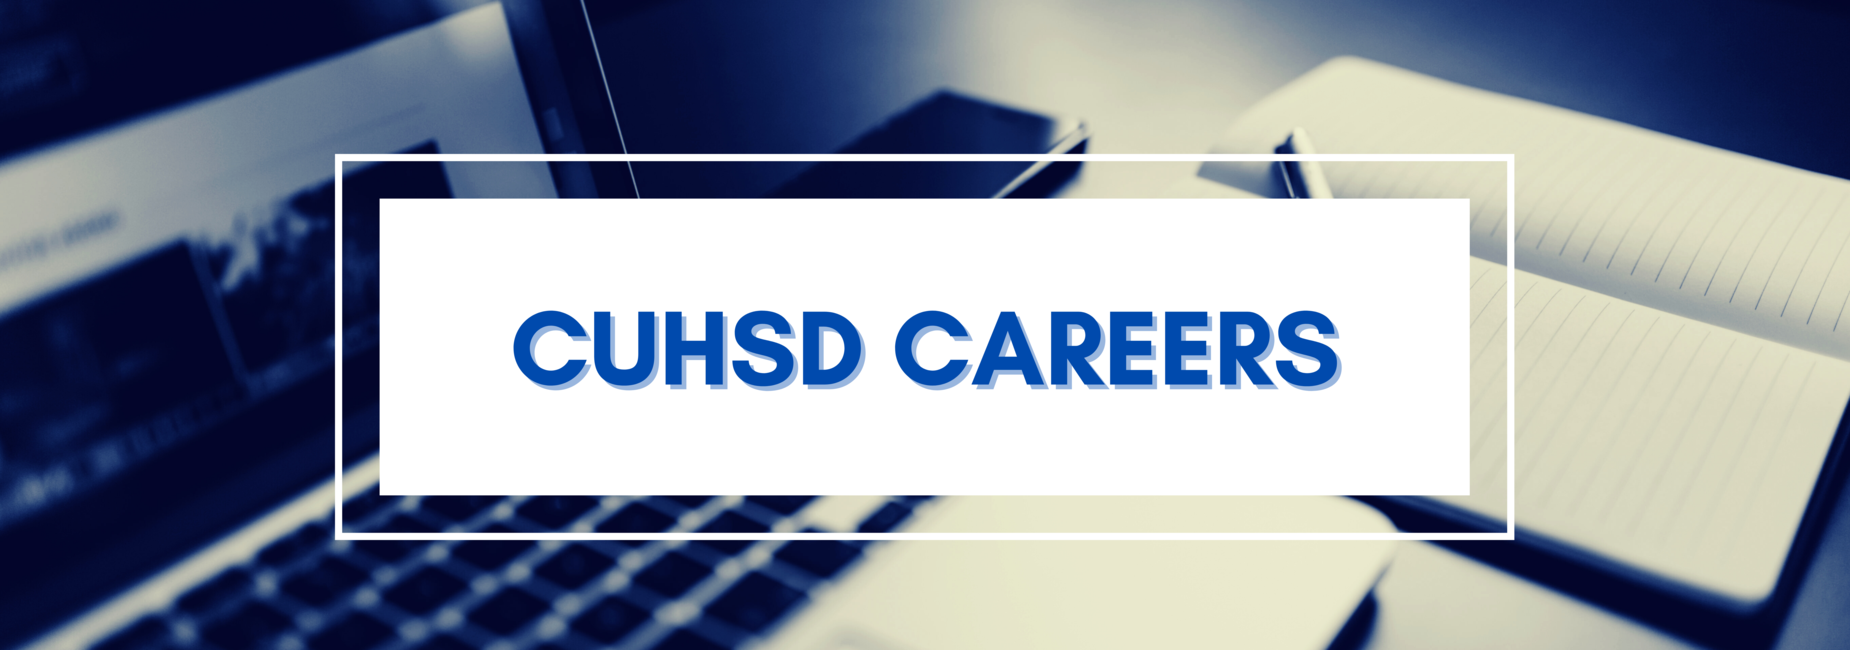 cuhsd careers